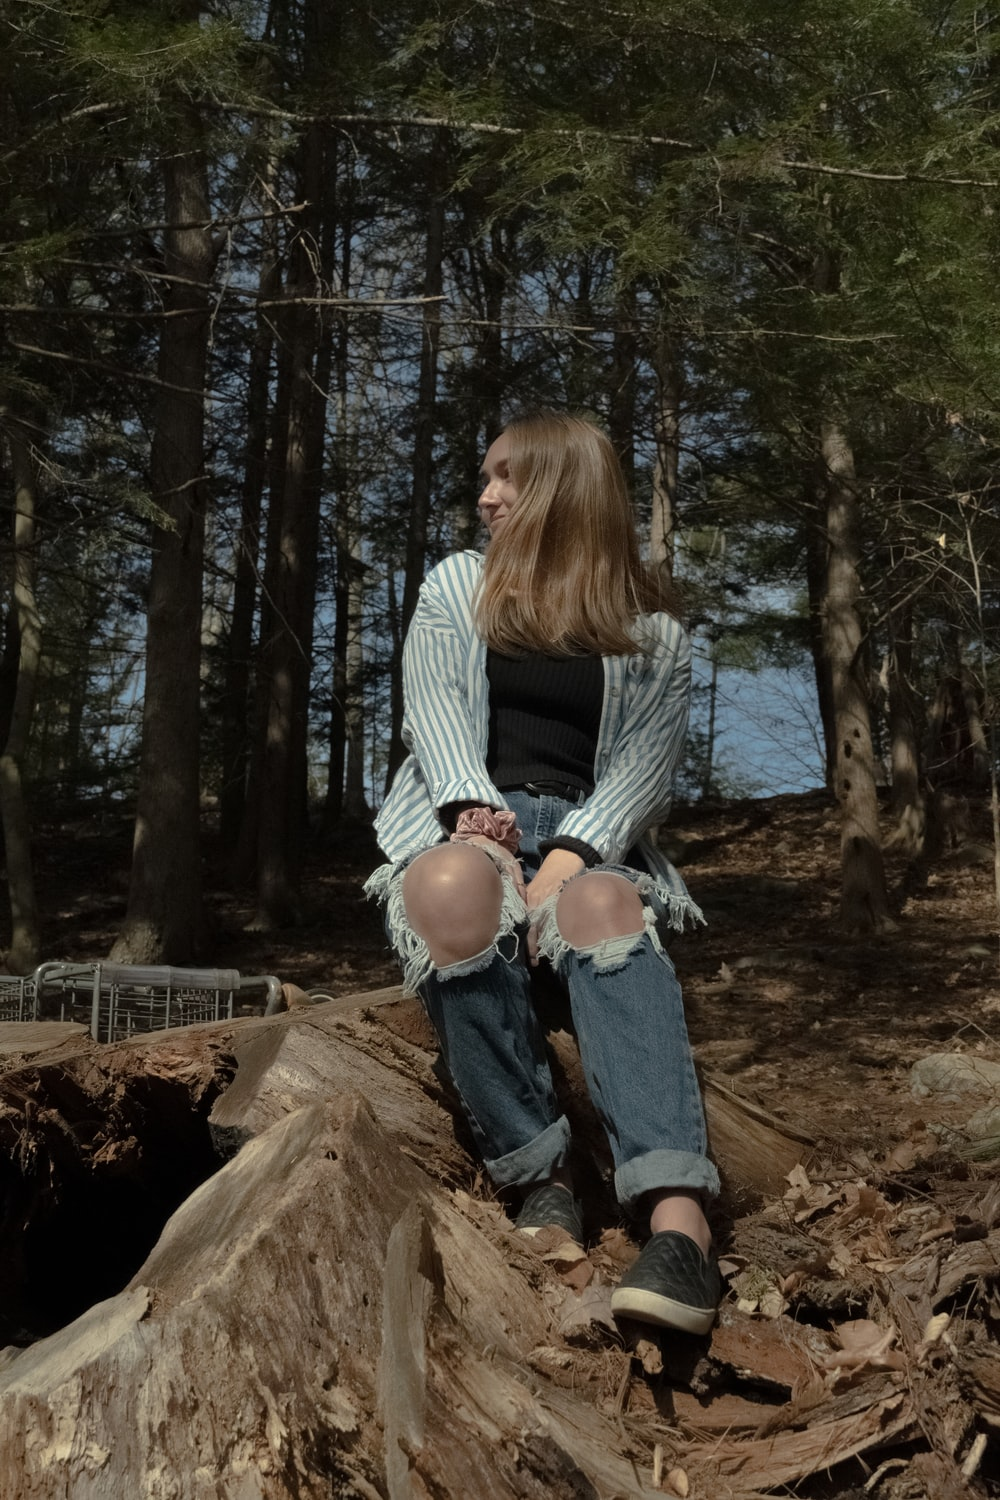 woman in white long sleeve shirt and blue denim jeans sitting on brown log during daytime